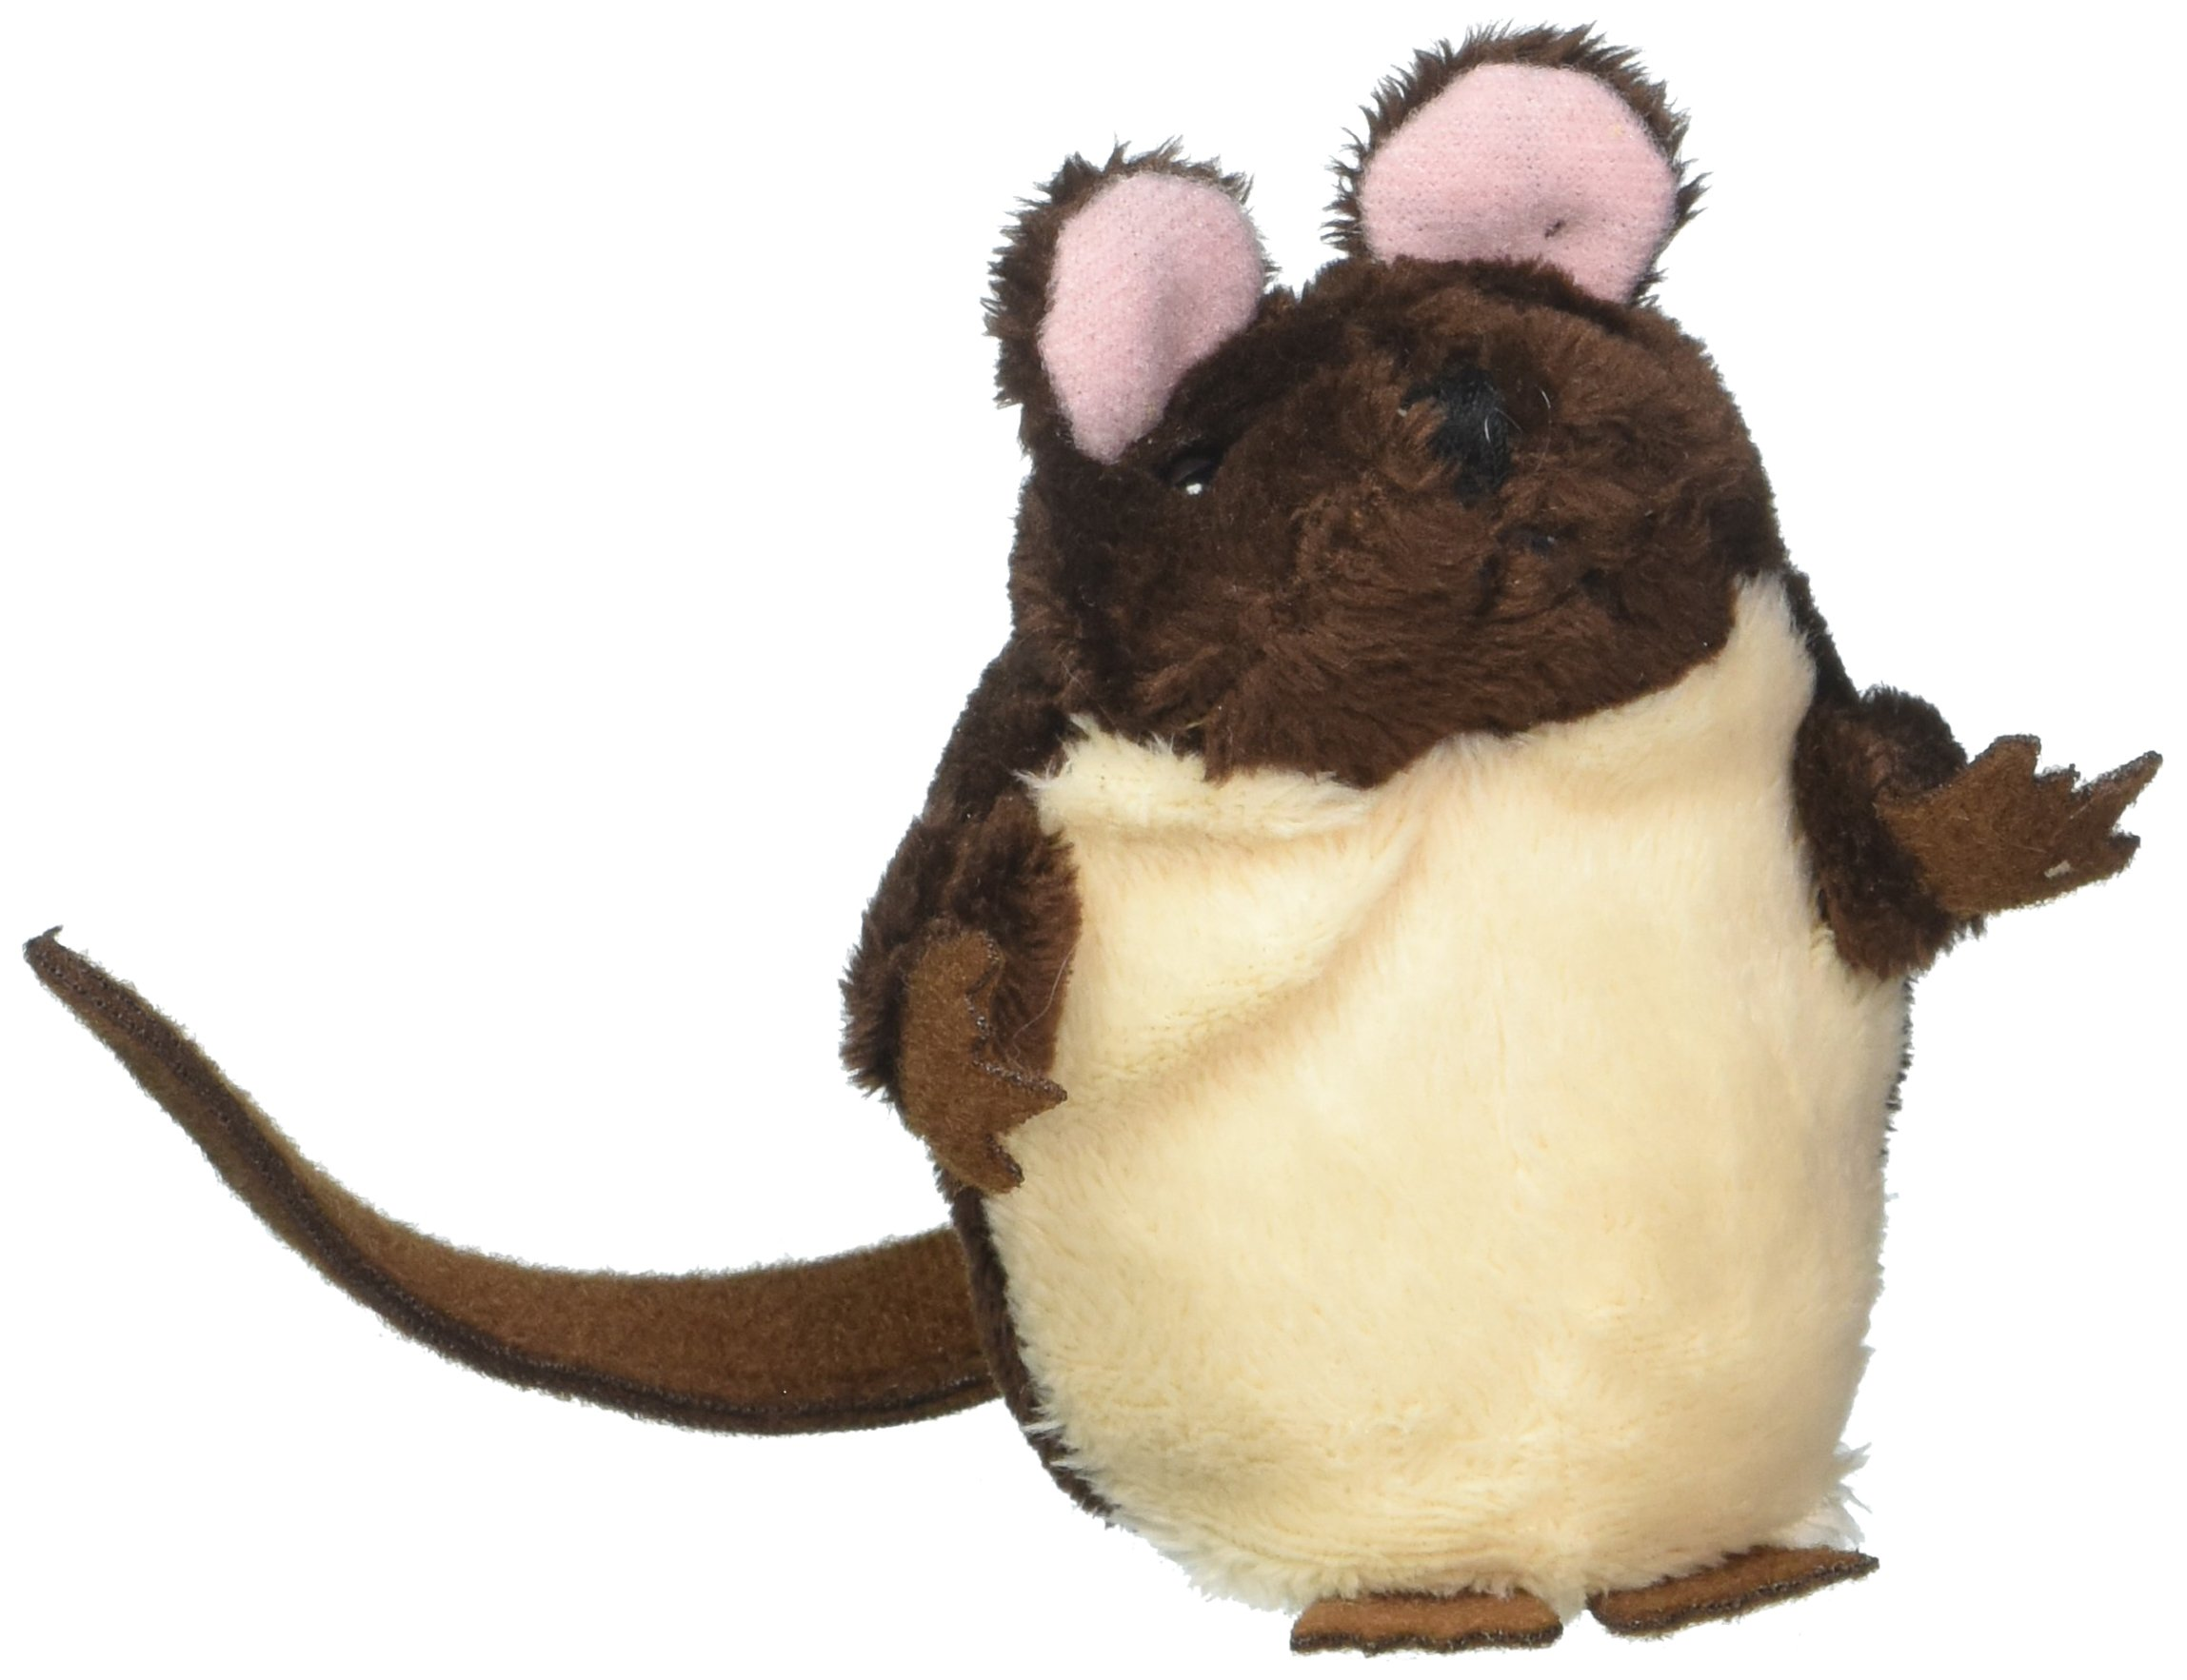 The Puppet Company Mouse Finger Children Toys Puppets, Brown